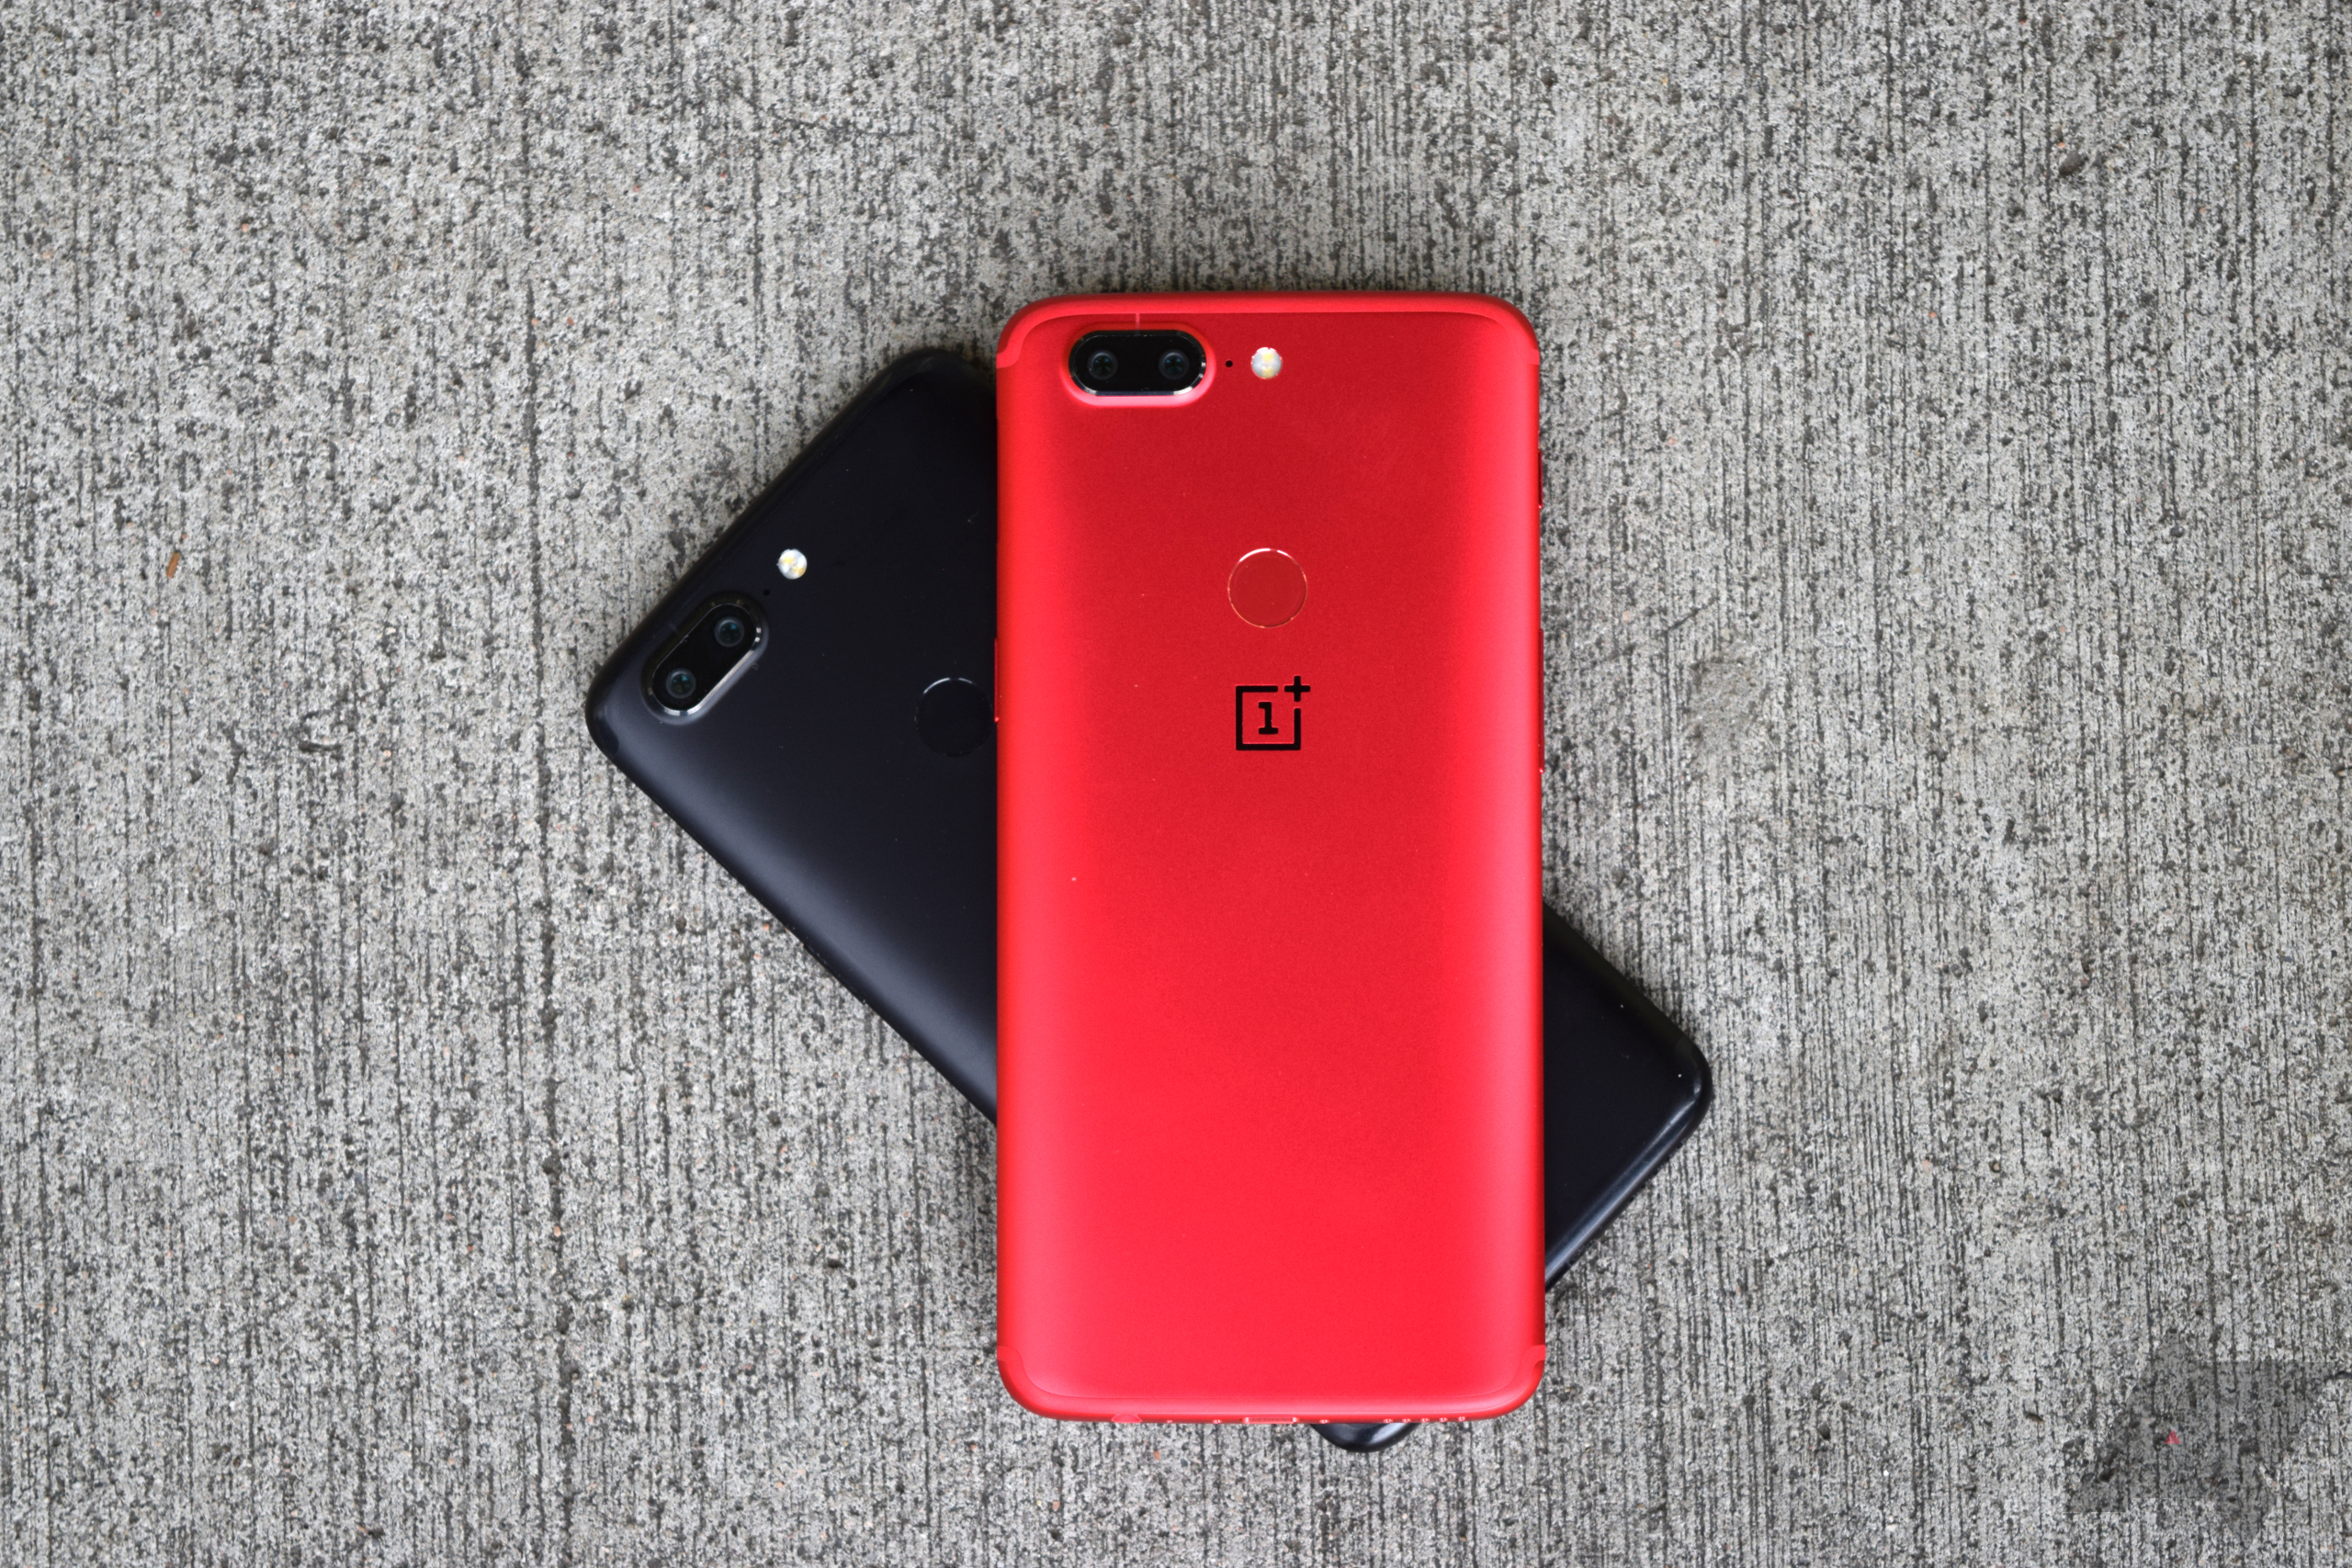 Update: 6/6T] Latest OnePlus 5/5T Open Beta adds new system update